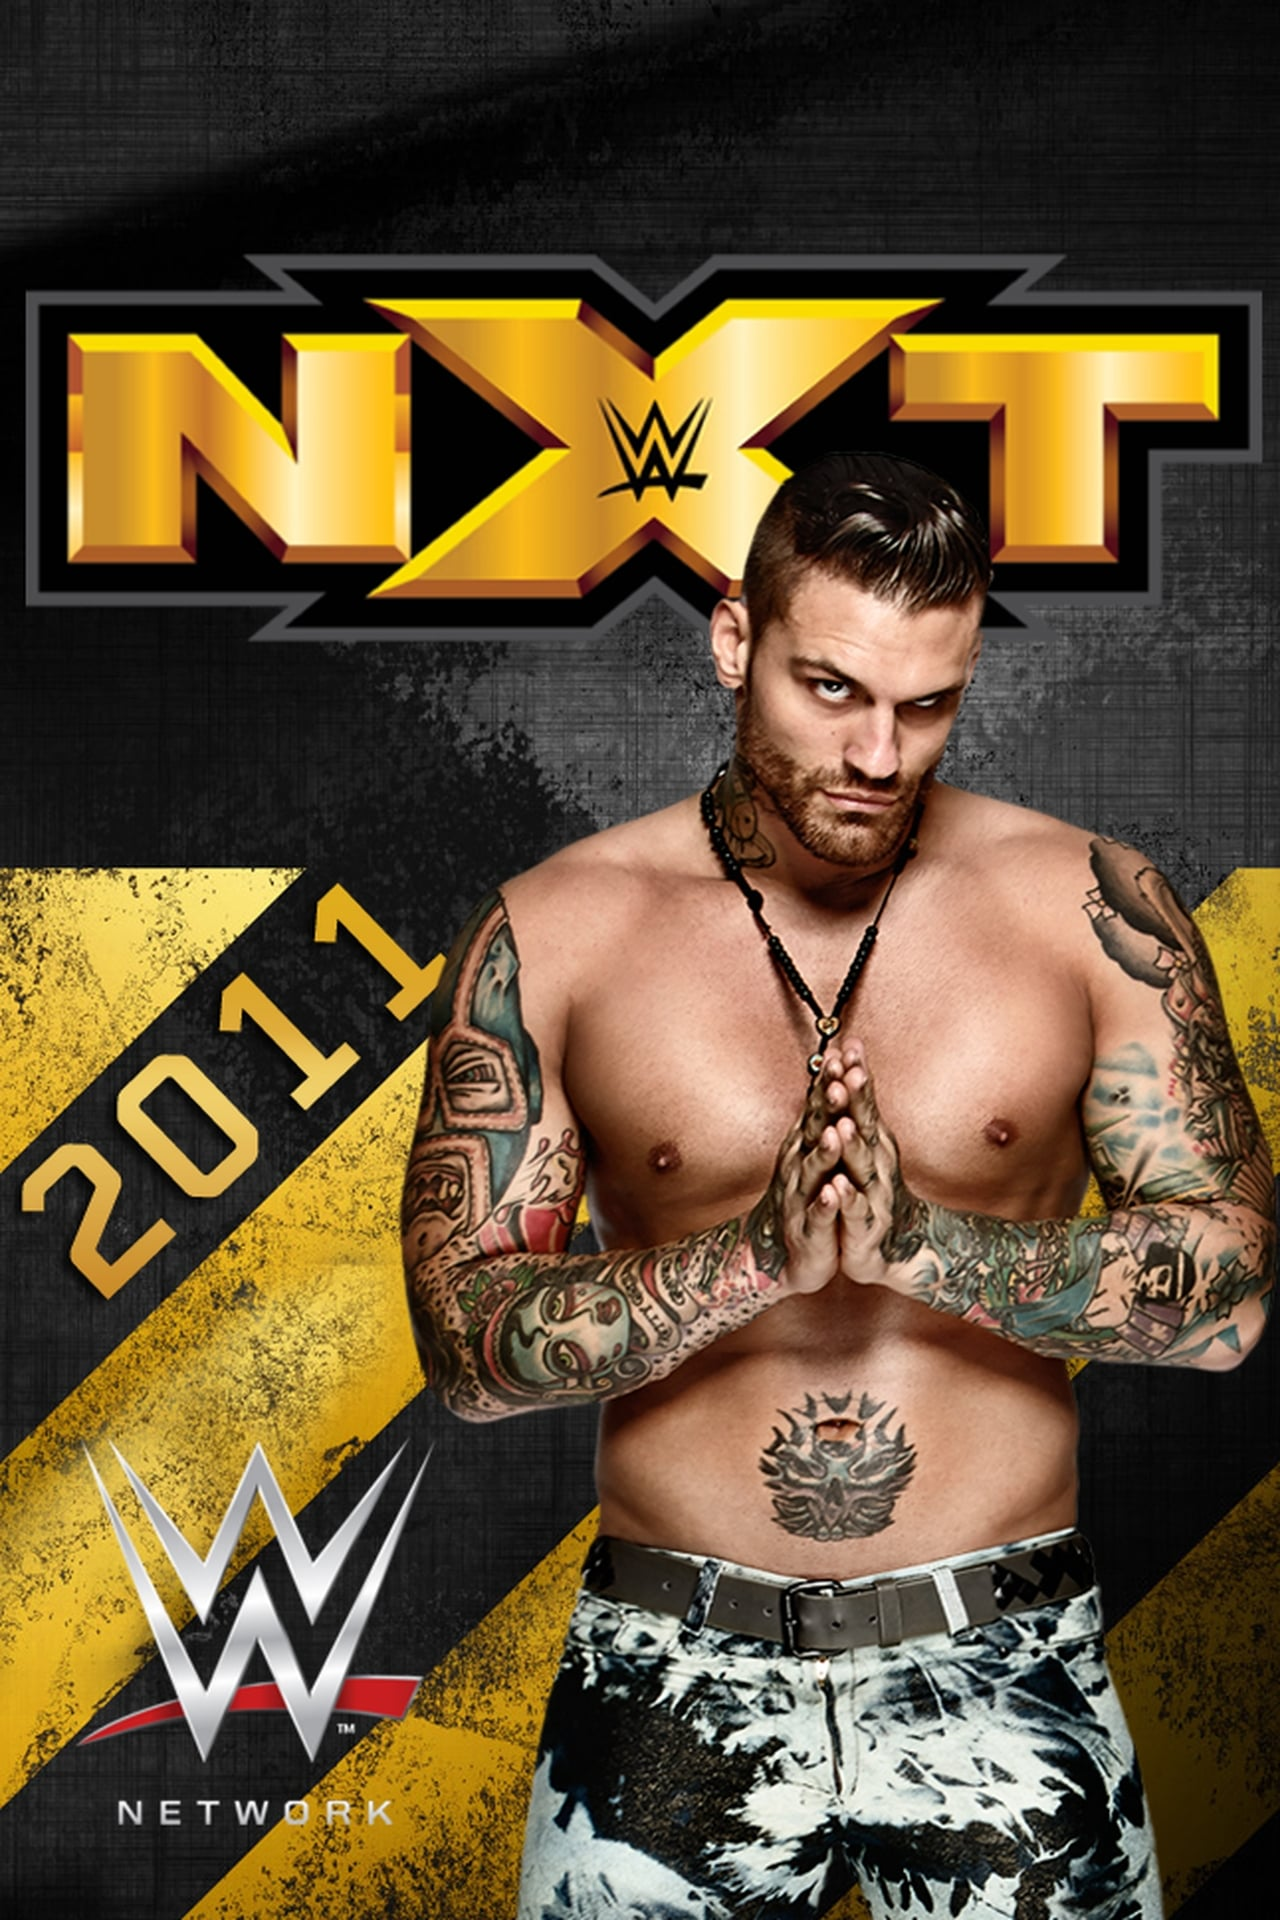 Putlocker Wwe Nxt Season 5 (2011)